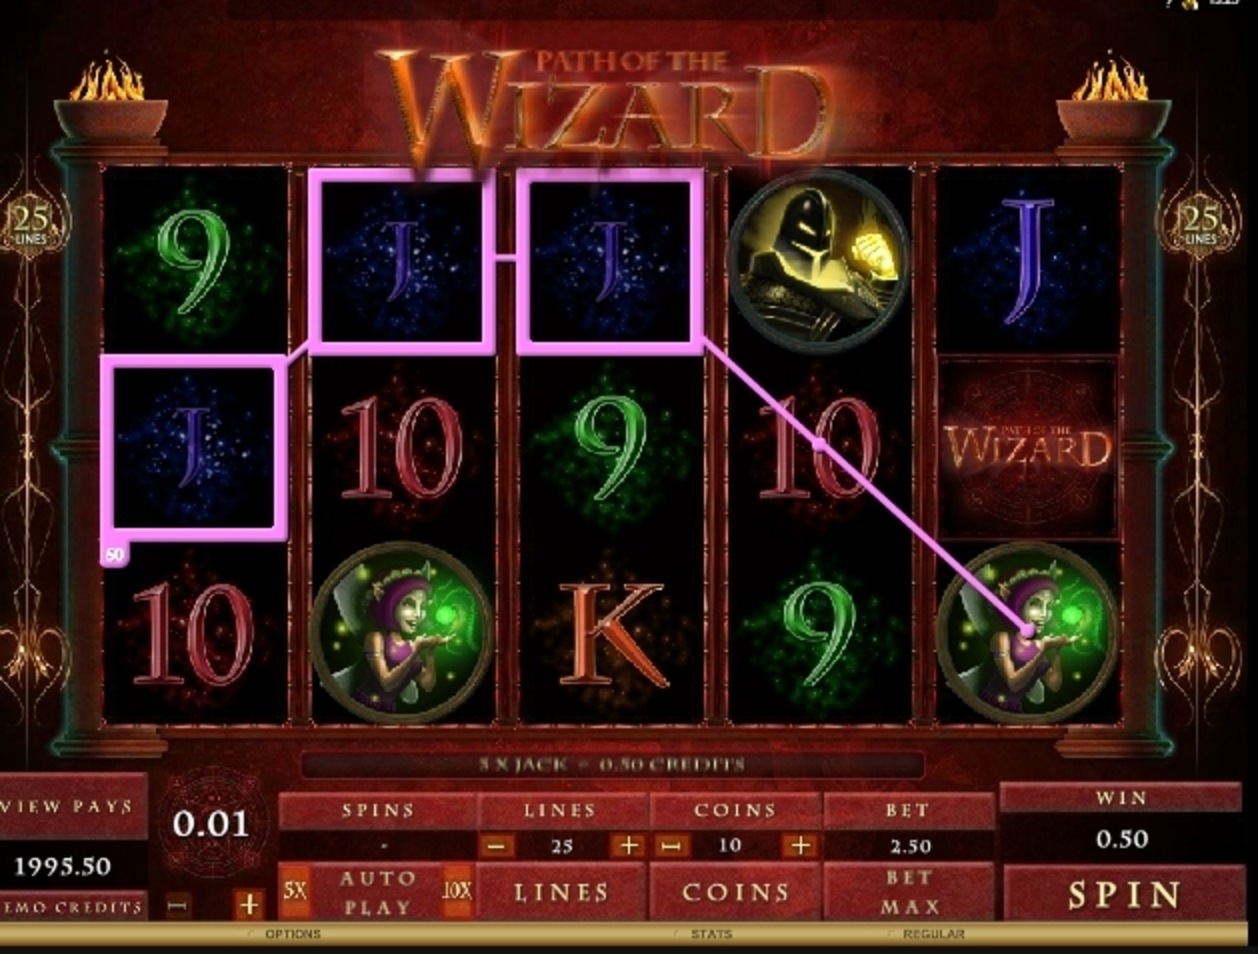 Win Money in Path of the Wizard Free Slot Game by Microgaming